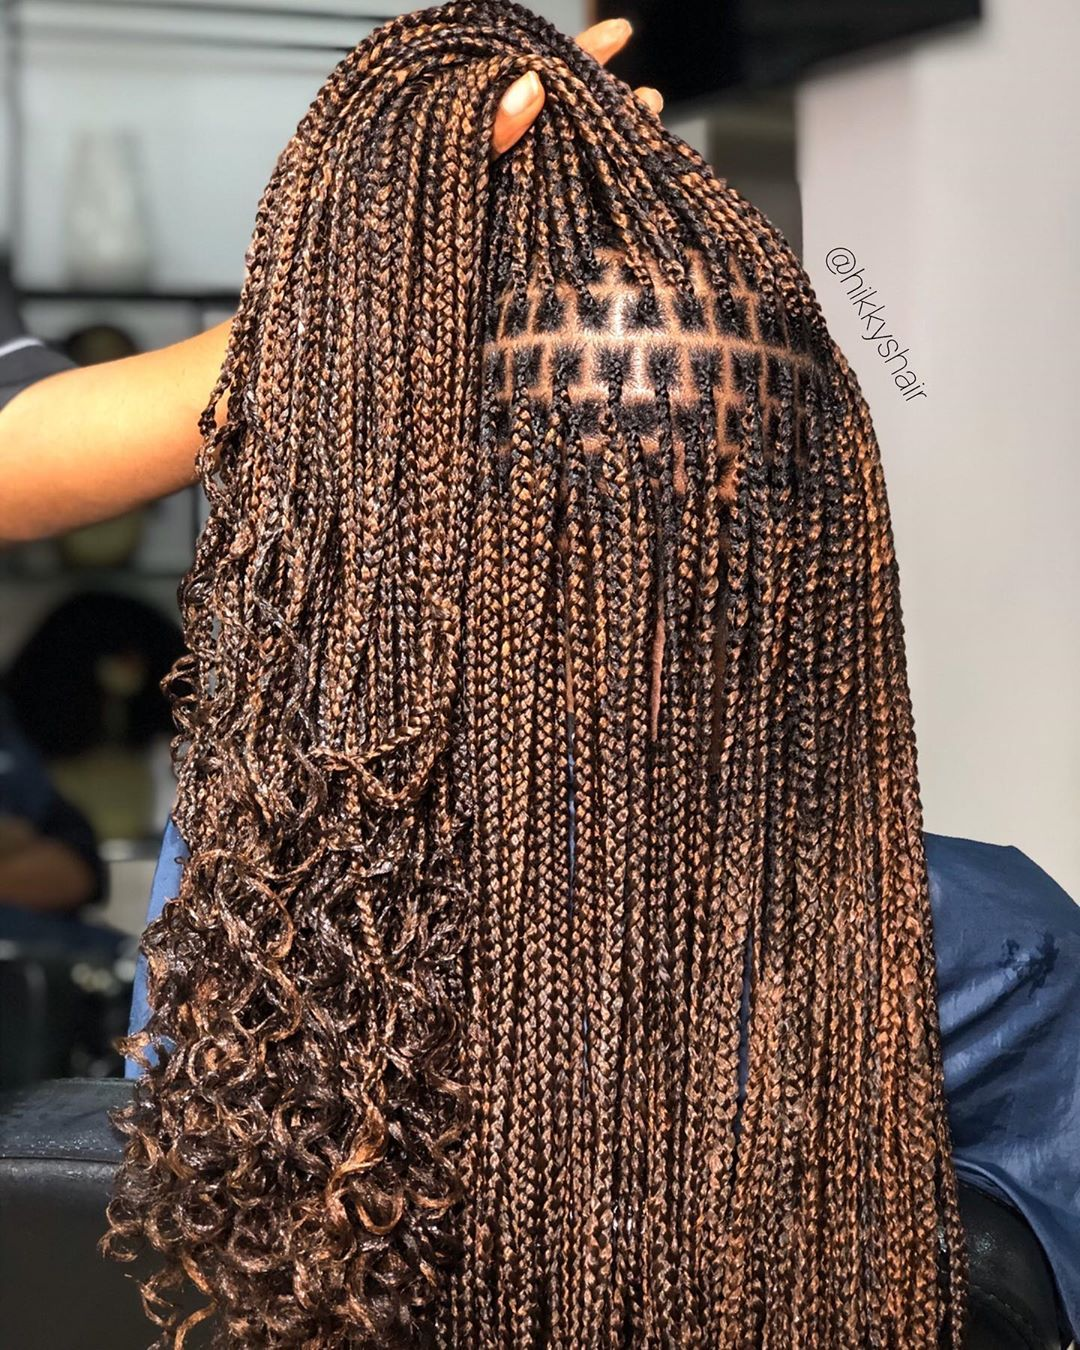 Hikky S Hair Studio On Instagram When In Doubt Get Braided At Thehikkyshairstudi Braided Hairstyles African Hair Braiding Styles Braids Hairstyles Pictures